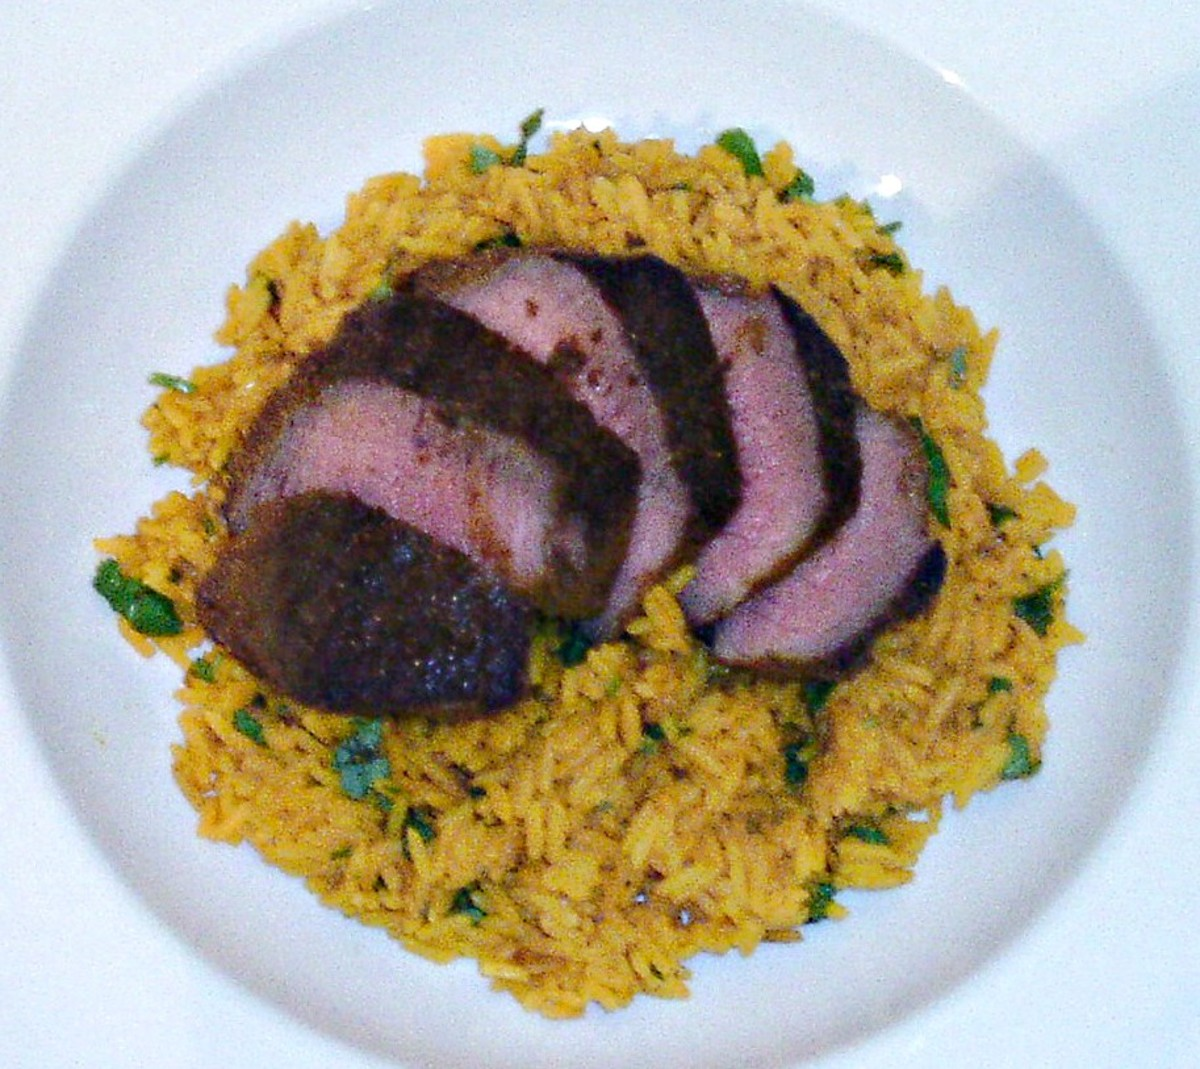 Sliced ostrich fillet steak is arranged on turmeric rice